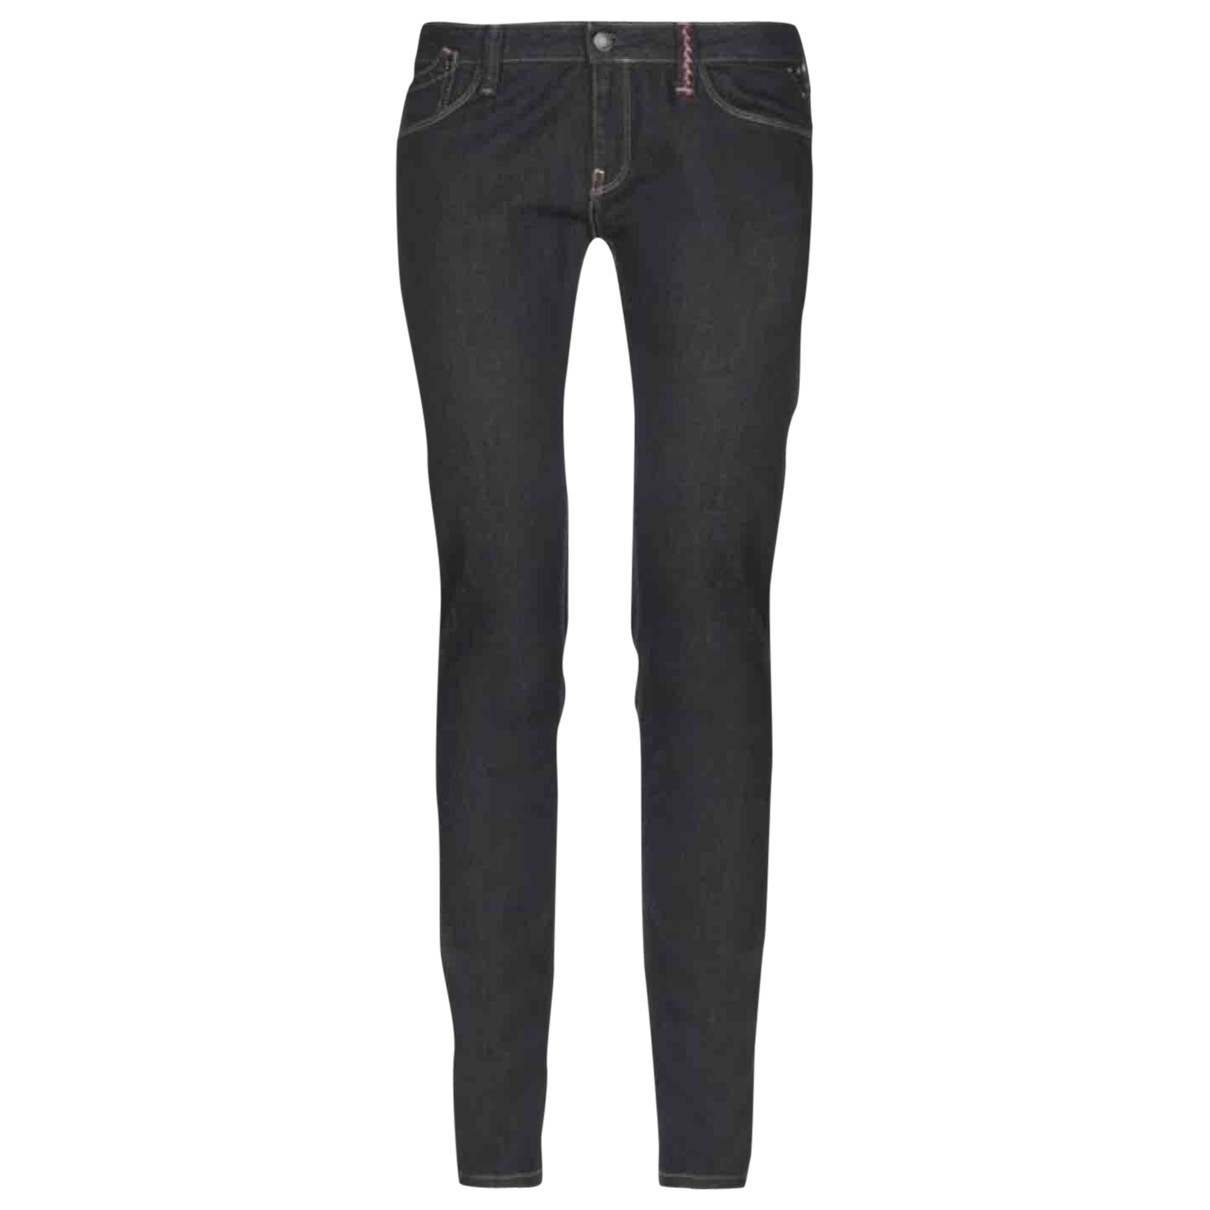 Replay \N Blue Cotton - elasthane Jeans for Women 34 FR